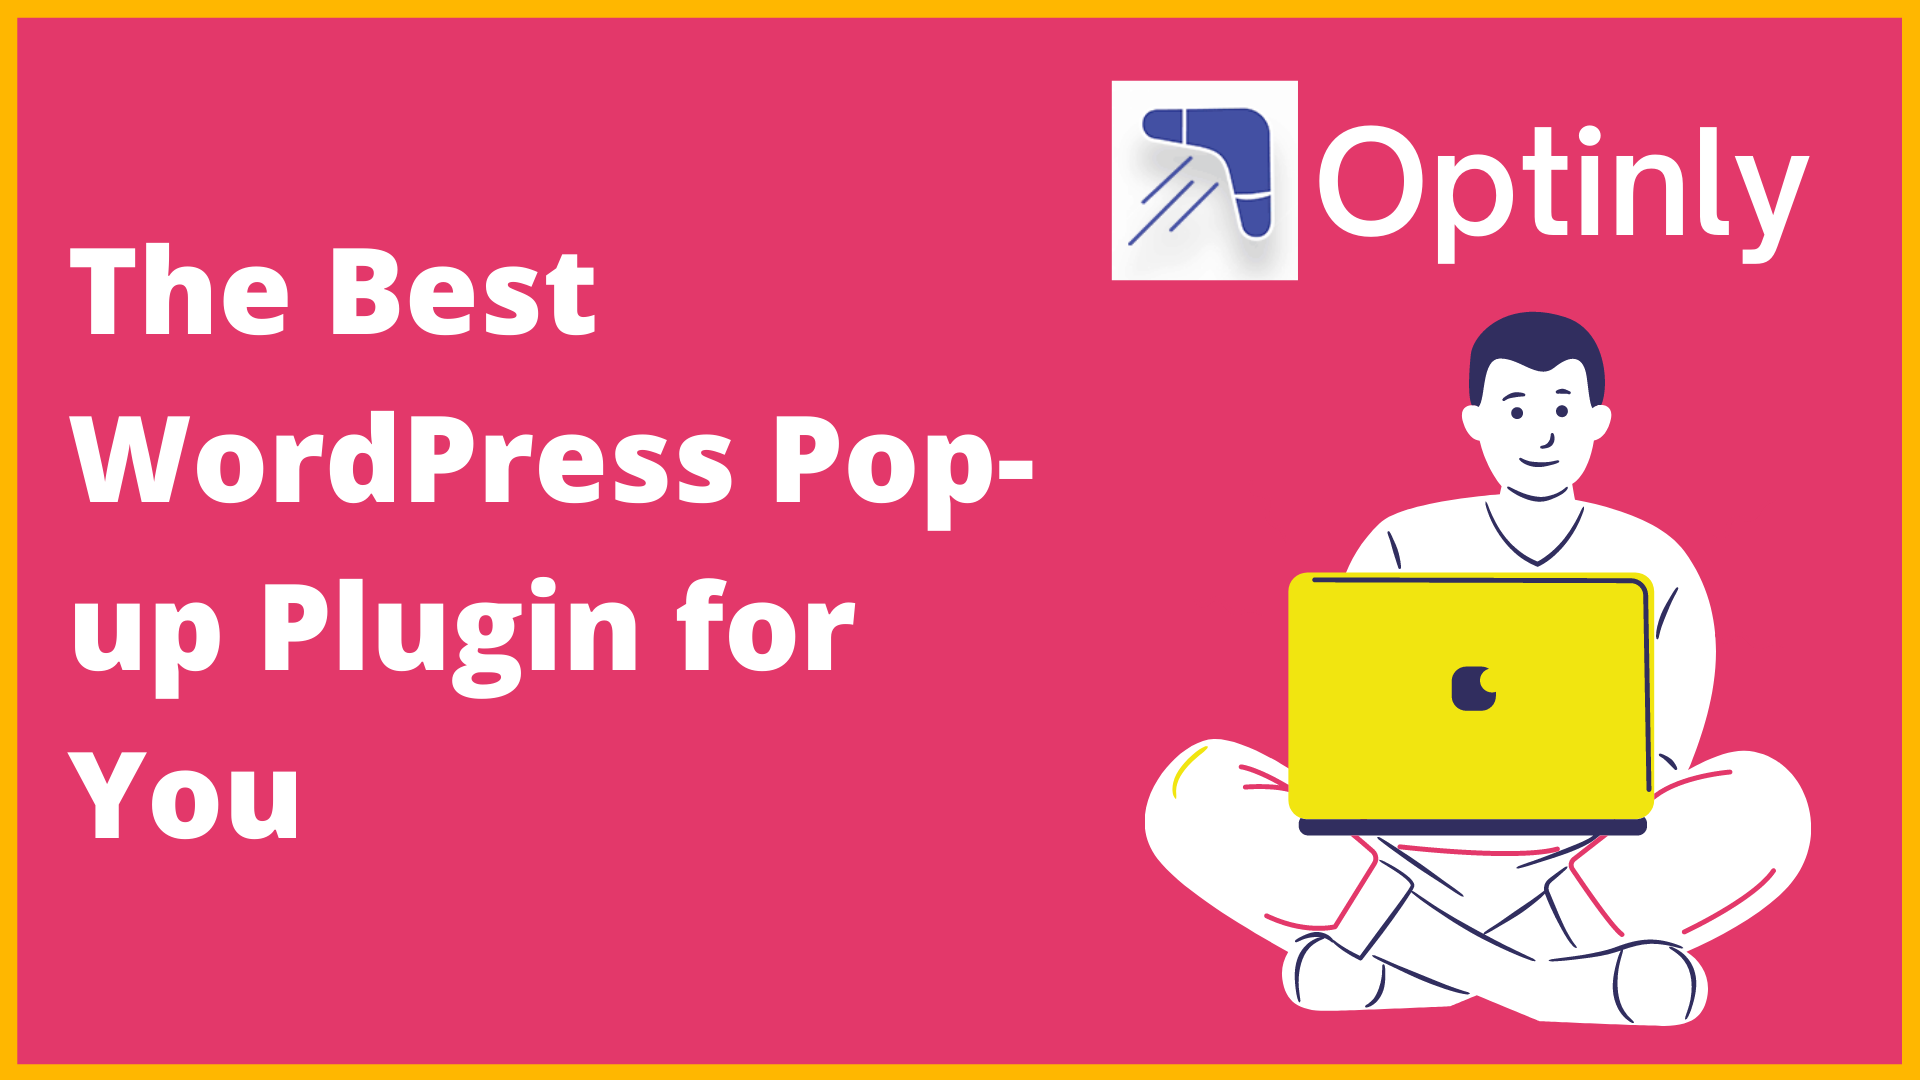 Optinly - The Best WordPress Pop-up Plugin To Get Now